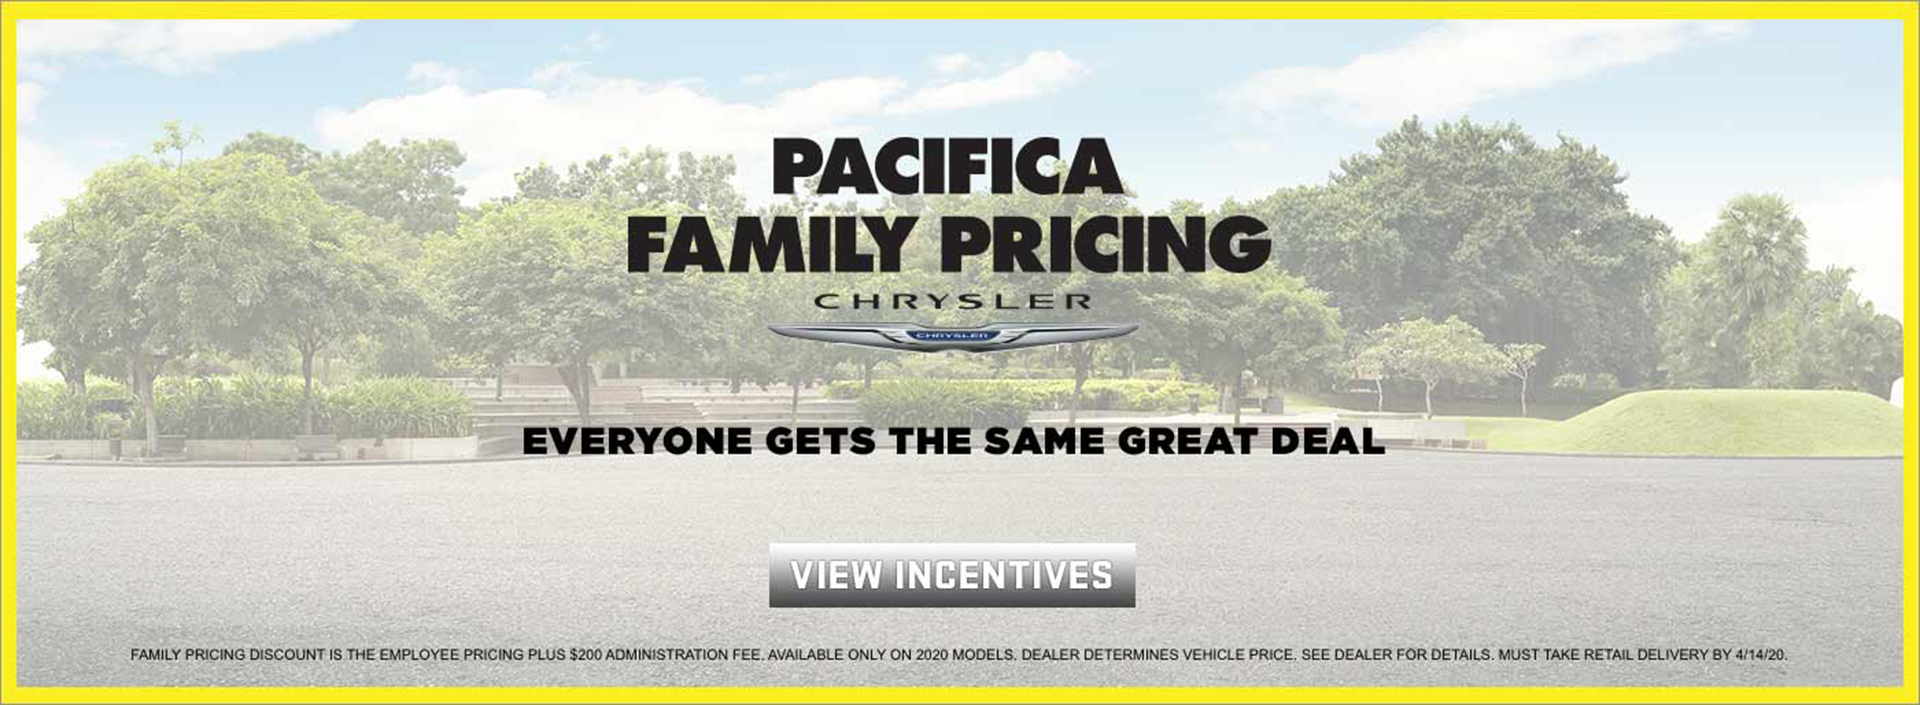 Chrysler Pacifica Family Pricing